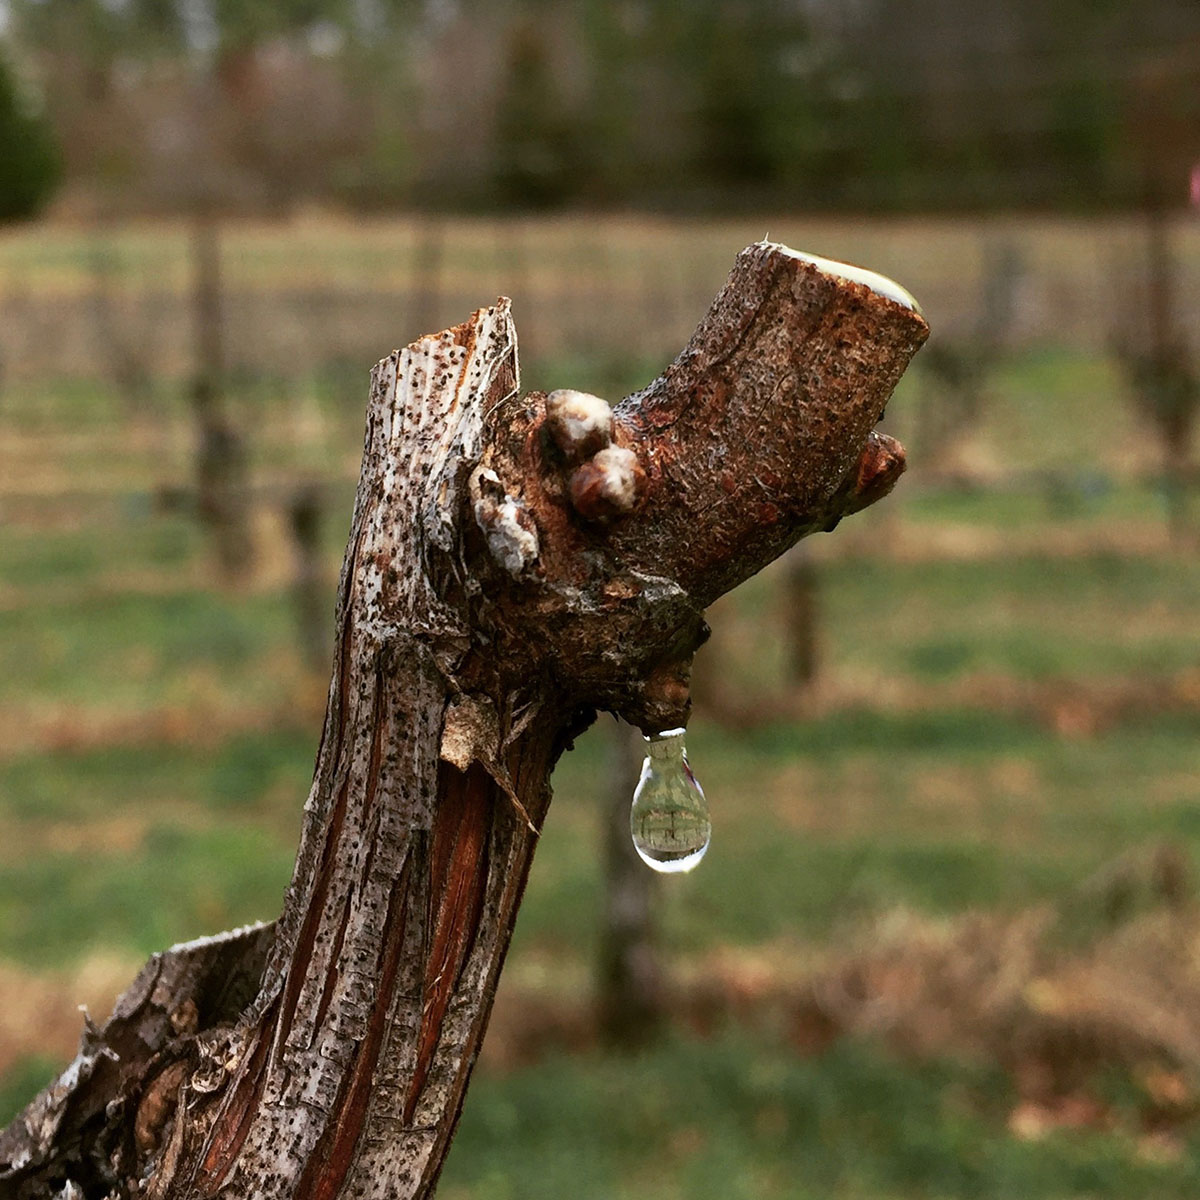 Pruned vine with drip of moisture.